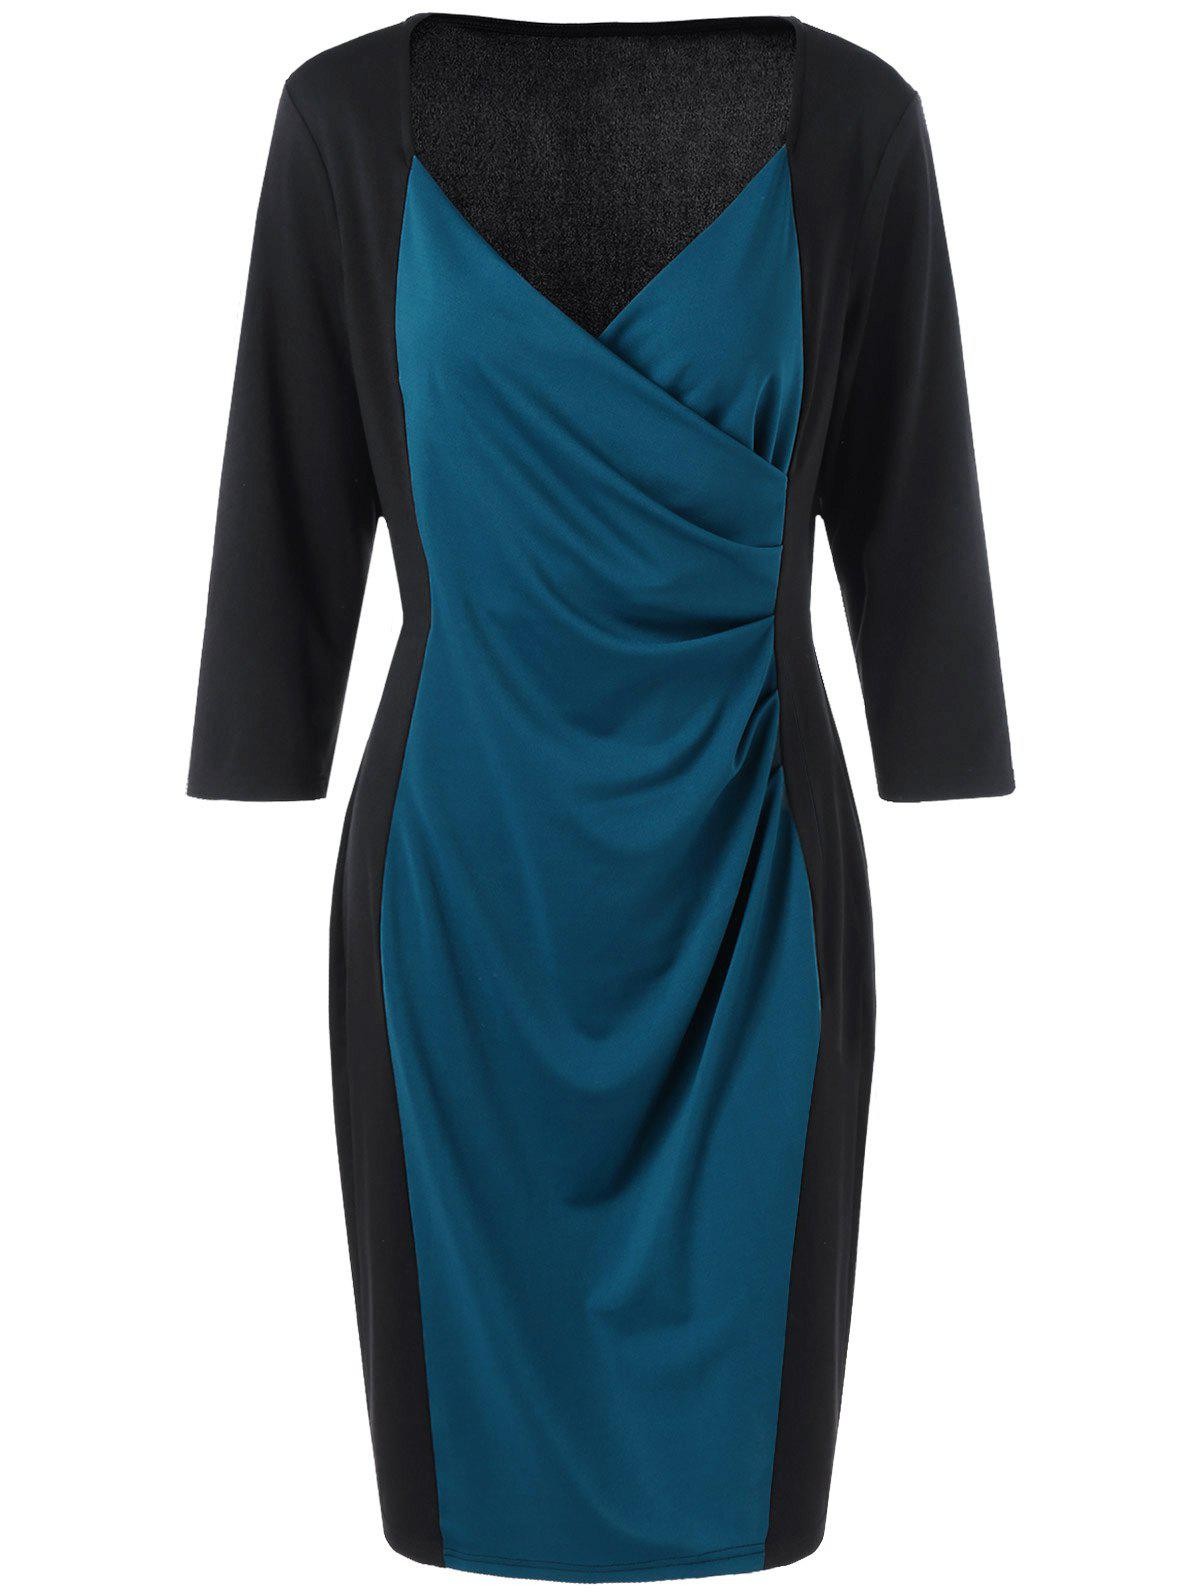 Plus Size V Neck Sheath Surplice DressWOMEN<br><br>Size: 2XL; Color: BLUE AND BLACK; Style: Brief; Material: Polyester,Spandex; Silhouette: Sheath; Dresses Length: Knee-Length; Neckline: Sweetheart Neck; Sleeve Length: 3/4 Length Sleeves; Pattern Type: Solid; With Belt: No; Season: Spring,Summer; Weight: 0.3700kg; Package Contents: 1 x Dress;